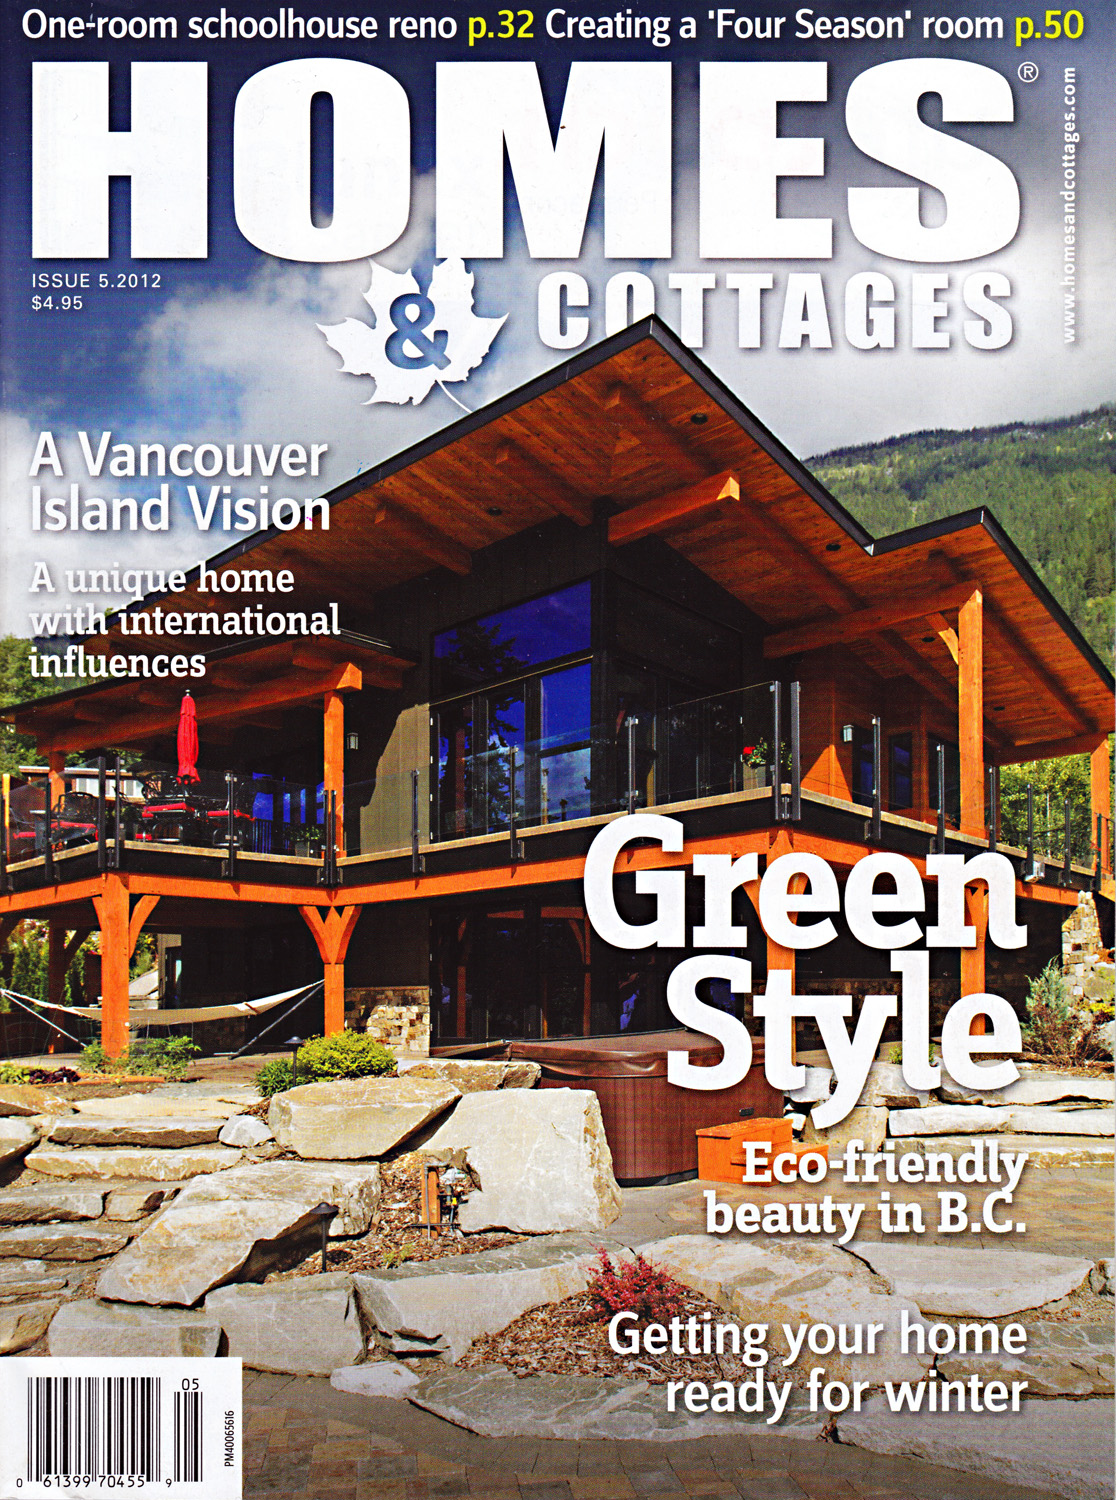 HomesCottagesCover2.jpg